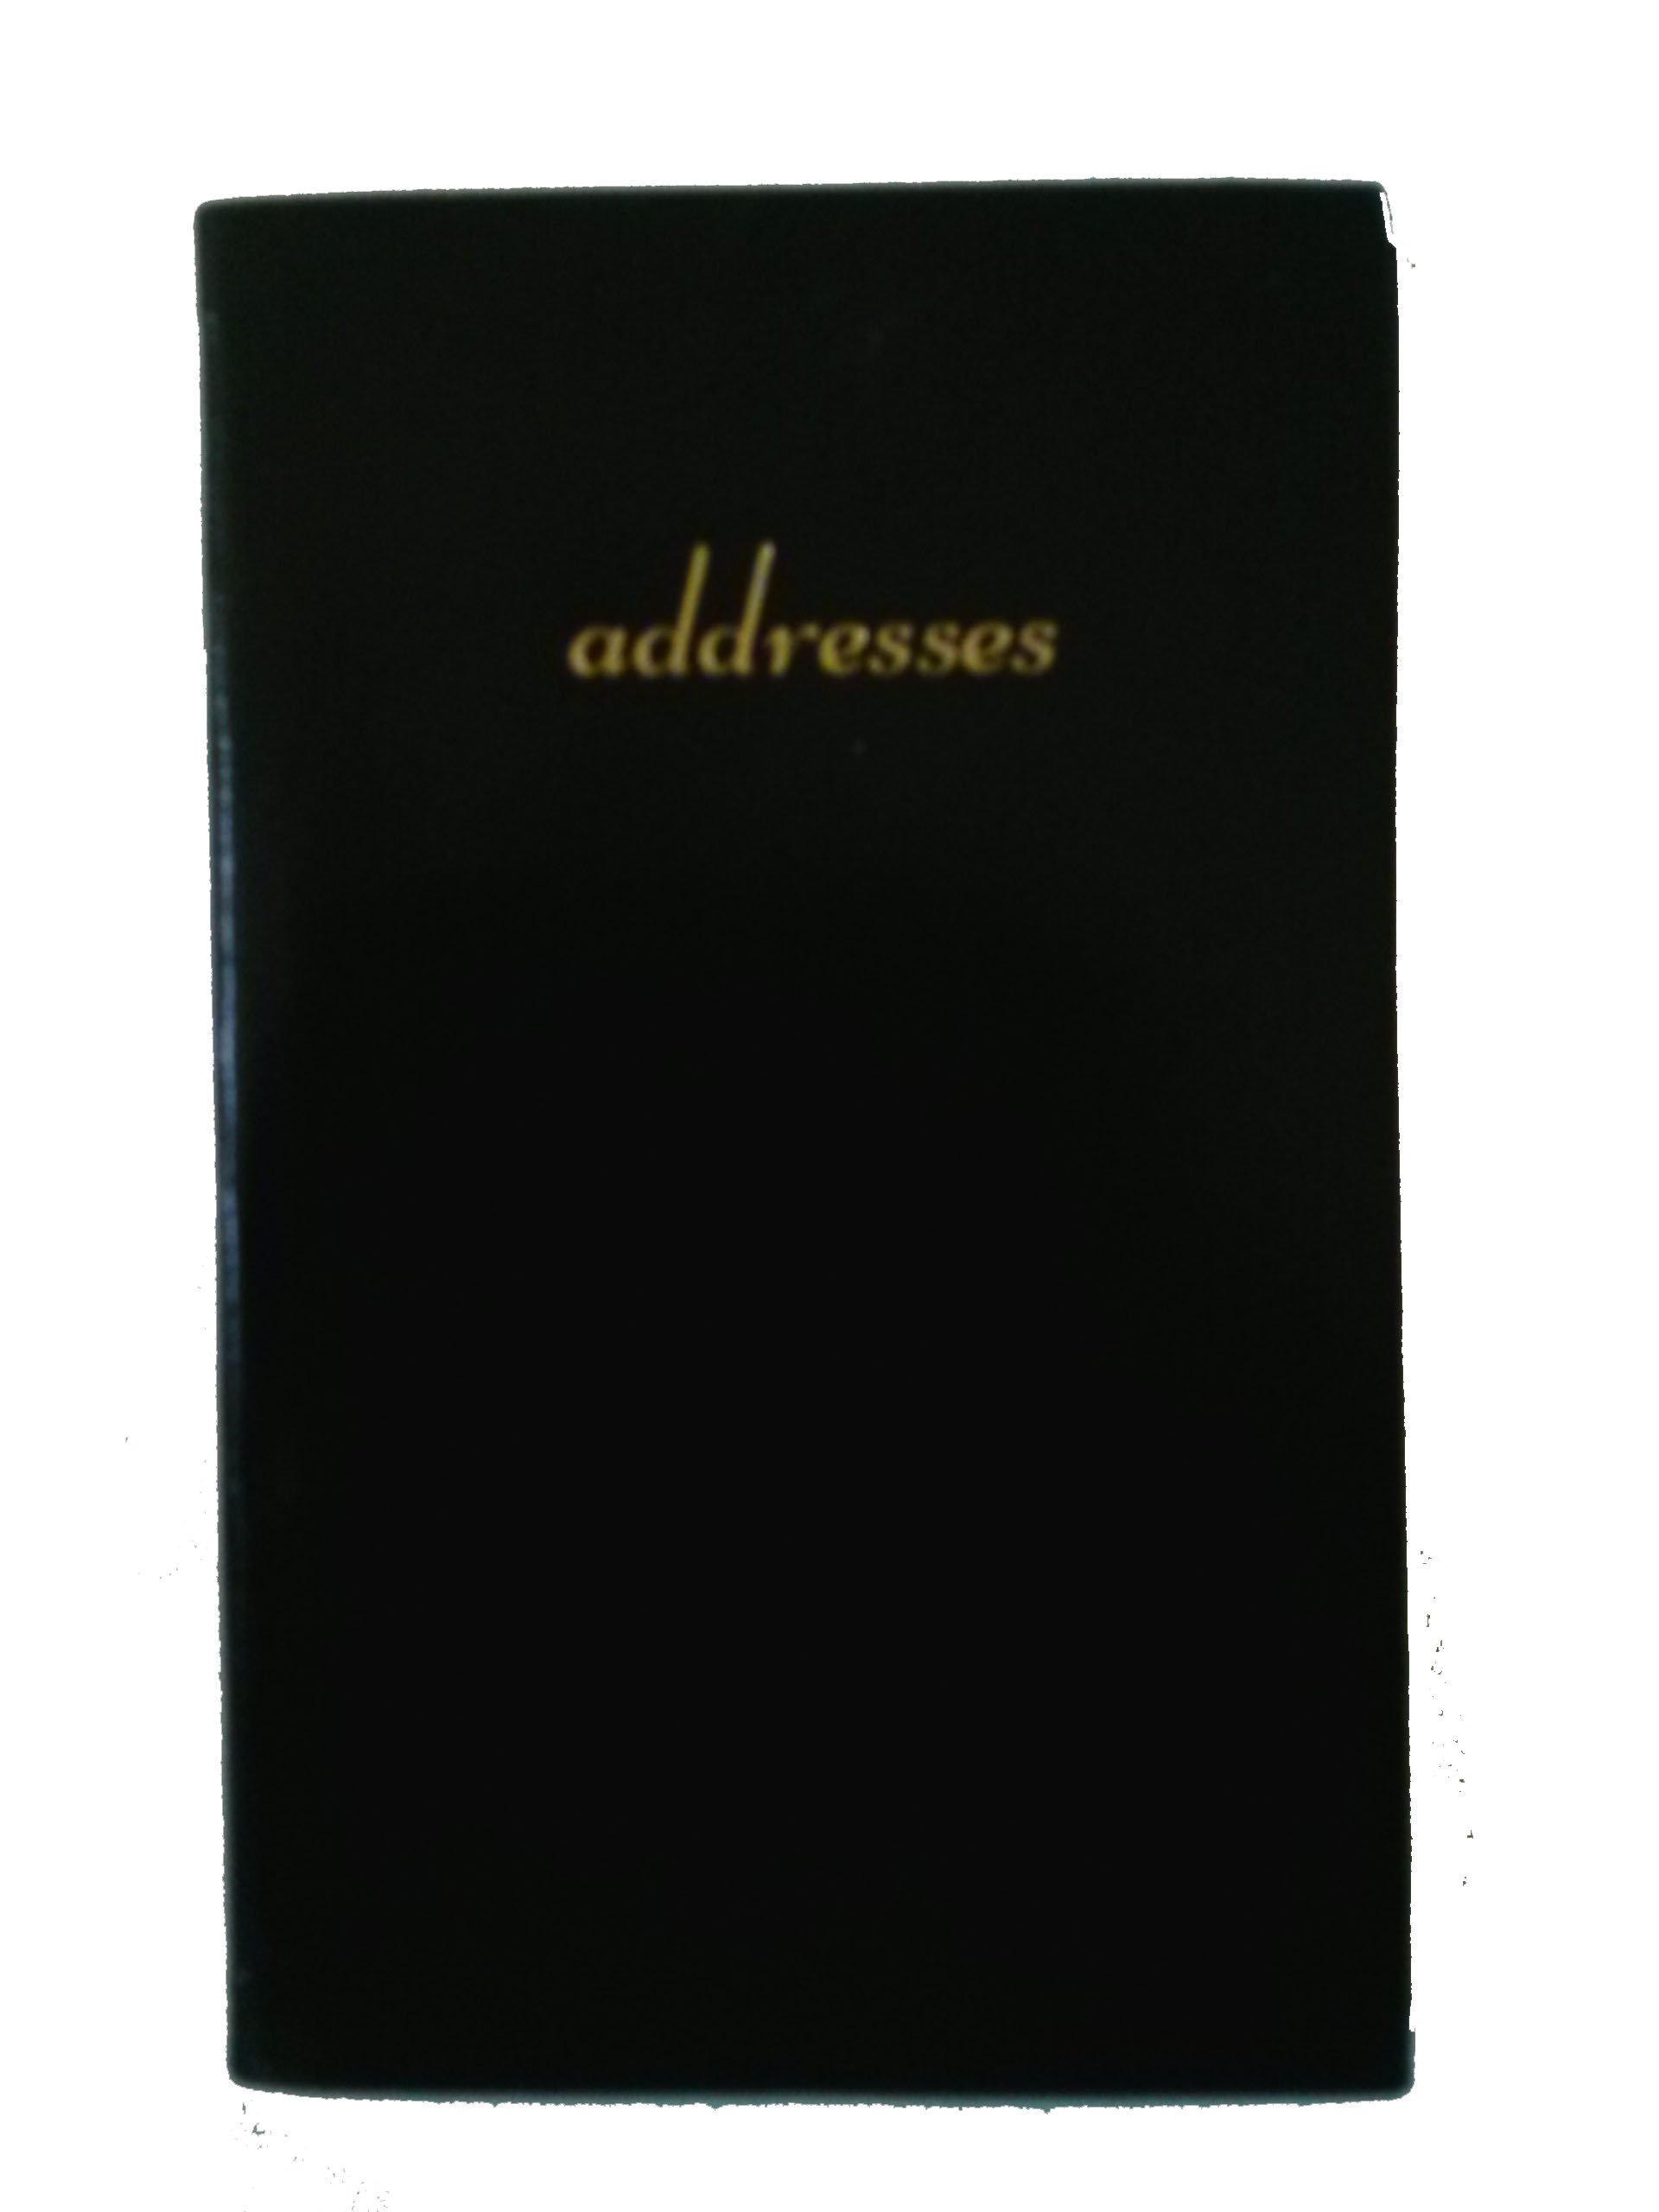 Charing Cross A53S 5'' X 3'' Address Book Black Simulated Leather